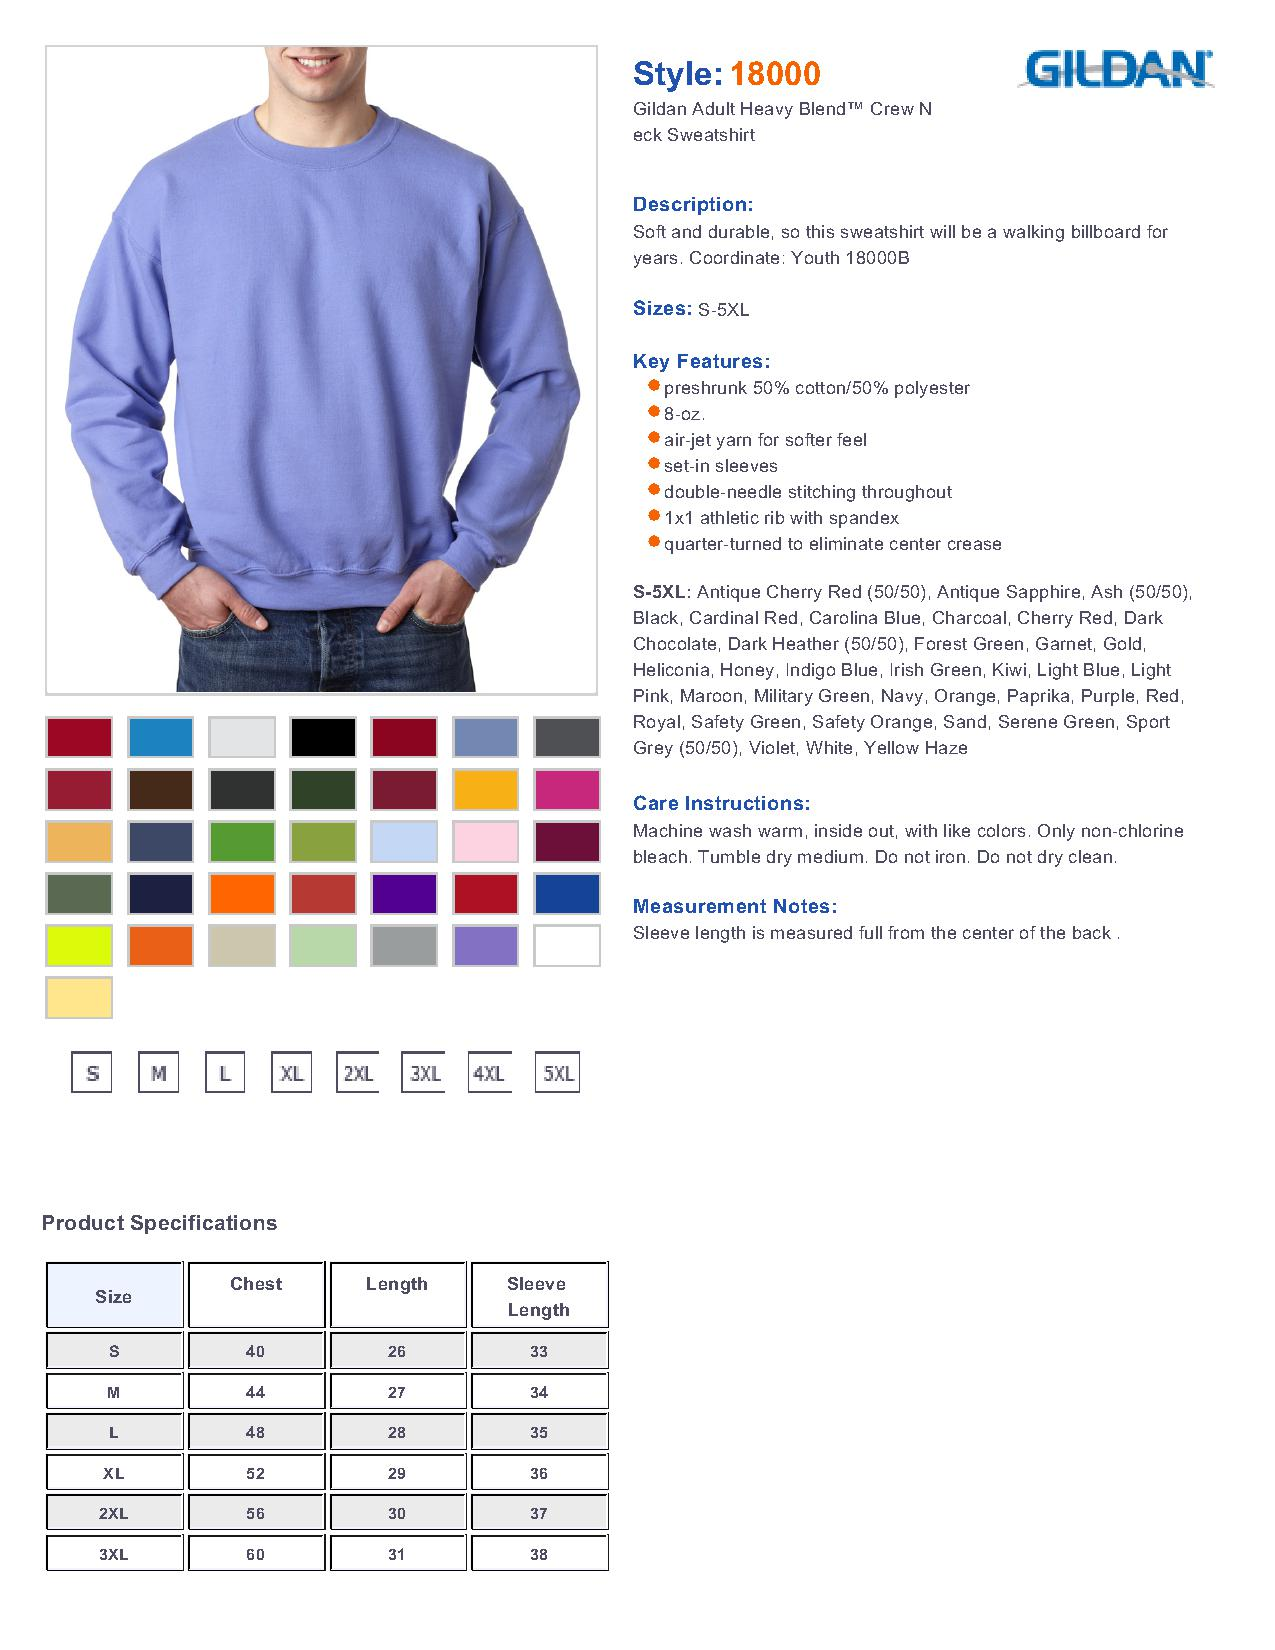 Sizes vary depending on manufacturer, design, and style. We carry a large assortment of brands, so sizing can vary from one brand to another. The size charts provide general guidelines.